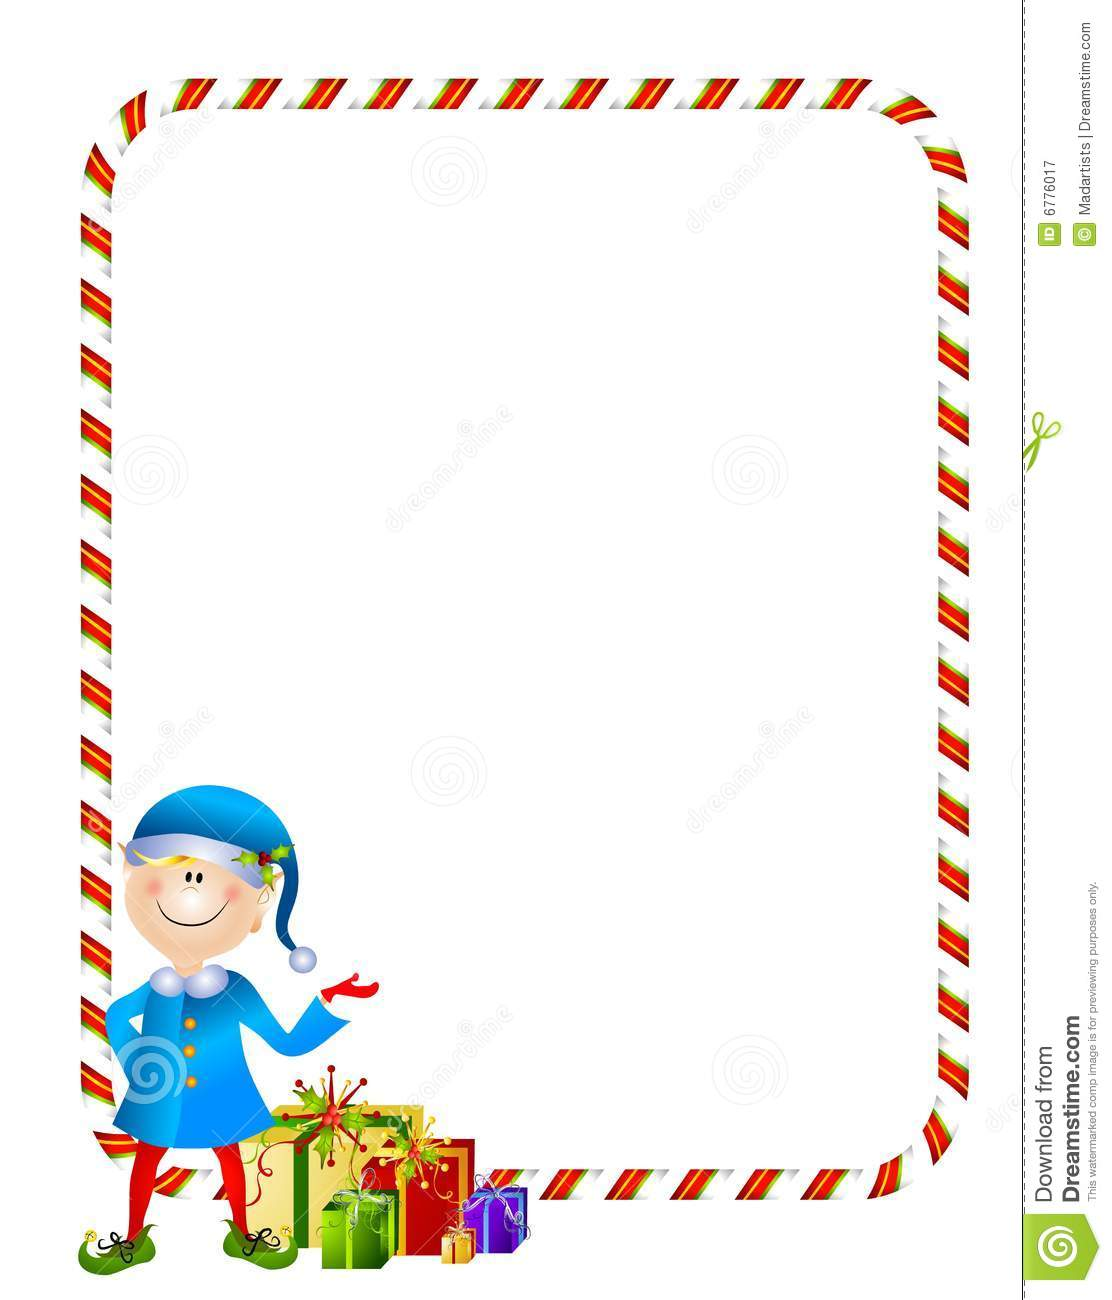 Xmas Elf With Gifts Border Royalty Free Stock Photography - Image ...